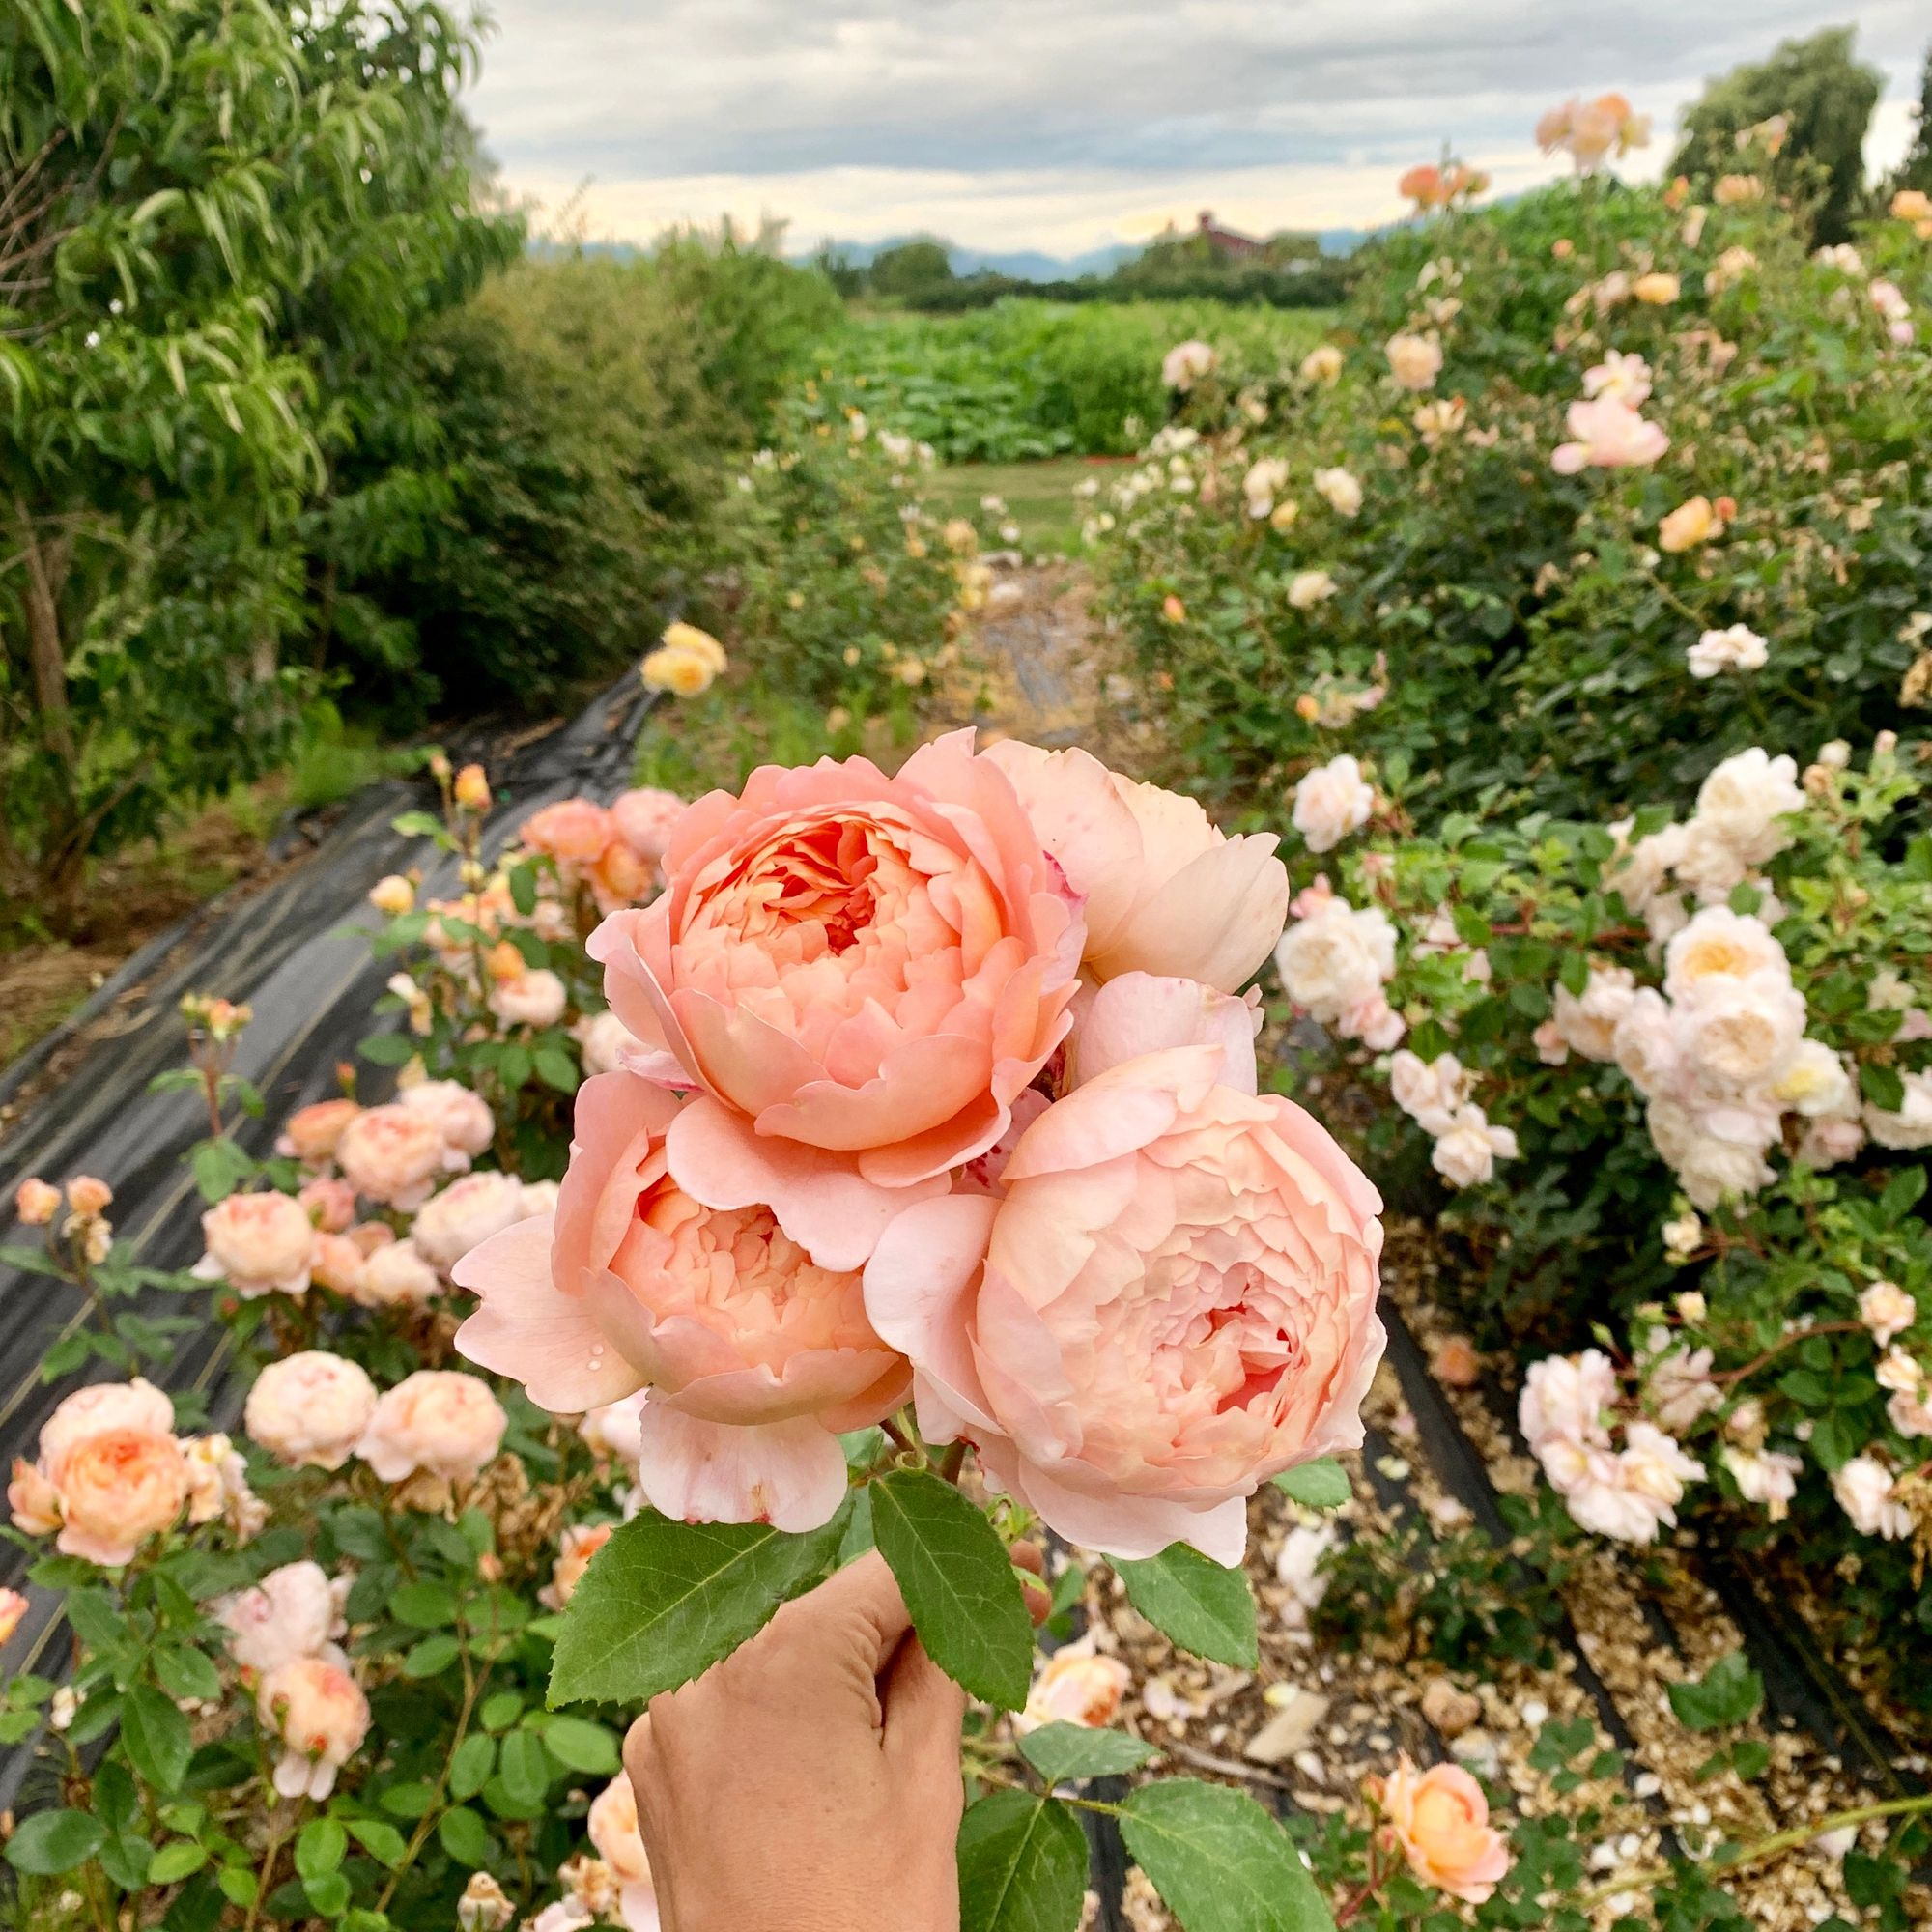 Garden roses at Floret Flower Farm. This is a David Austin Rose, Ambridge. It's soft apricot coloring and fruity scent are out of this world!  #growfloret #ayearinflowers